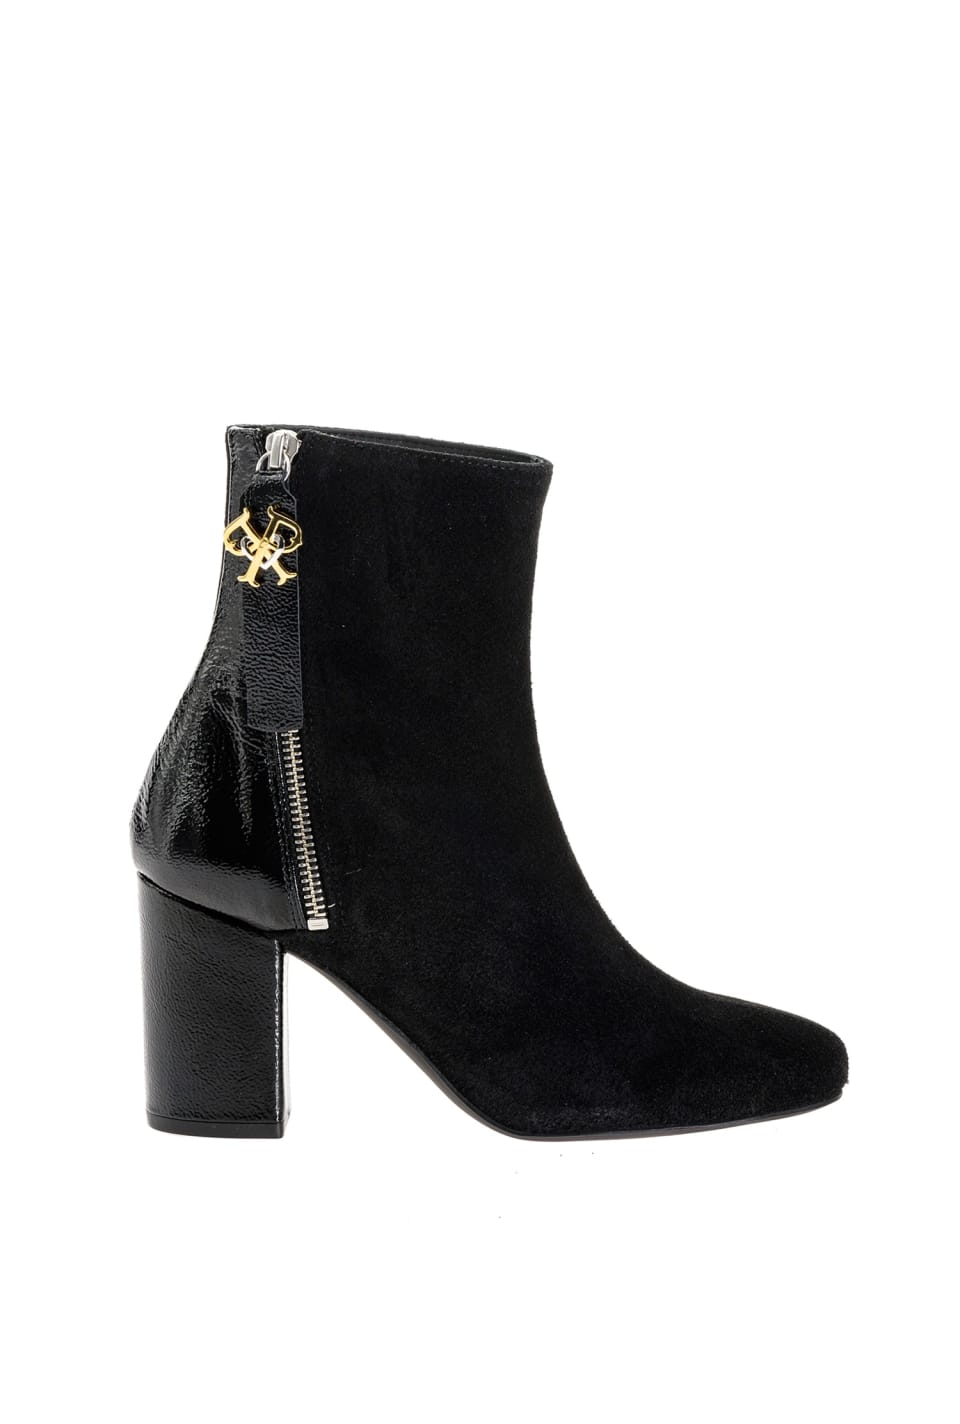 Bottines avec logo Double P - Pinko